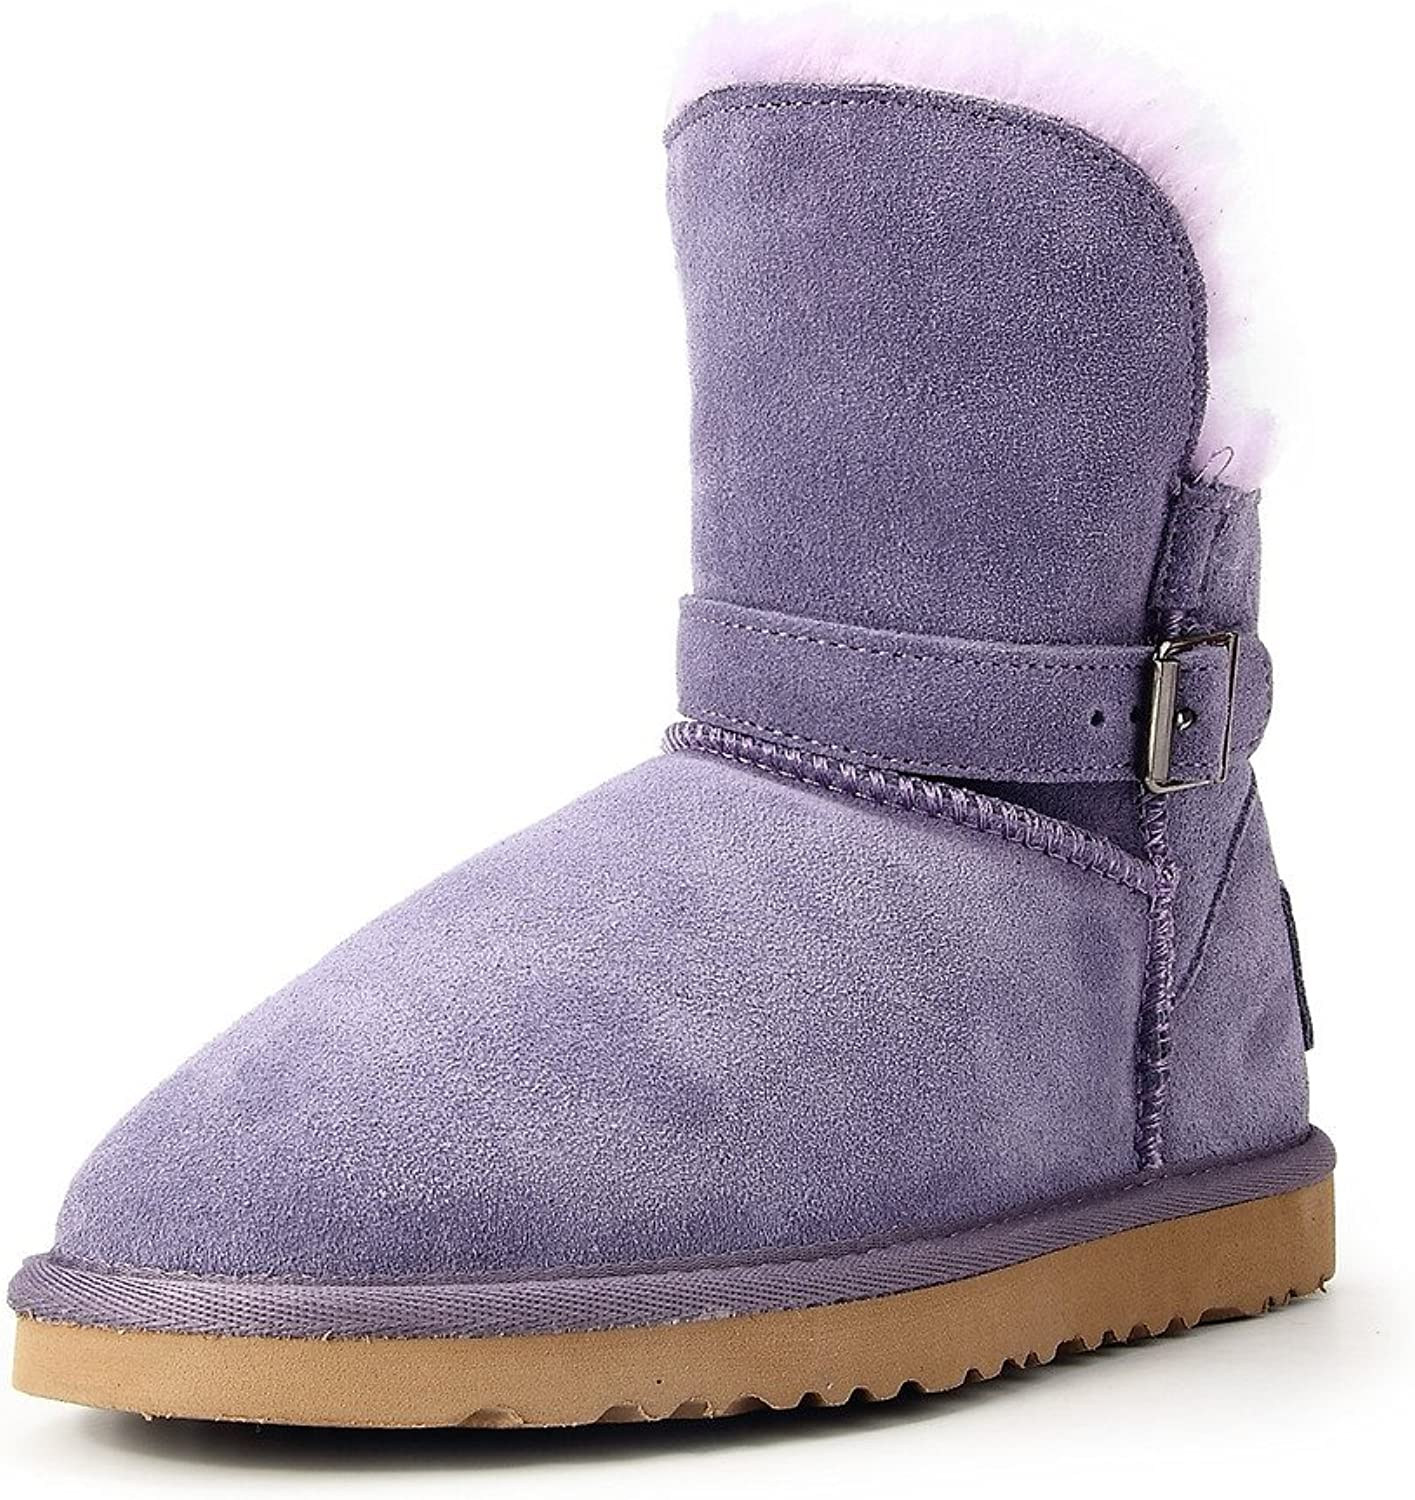 AUSLAND Women's Cowhide Leather Snow Boots Buckle Footwear 9527 Lavender 9.5US 40